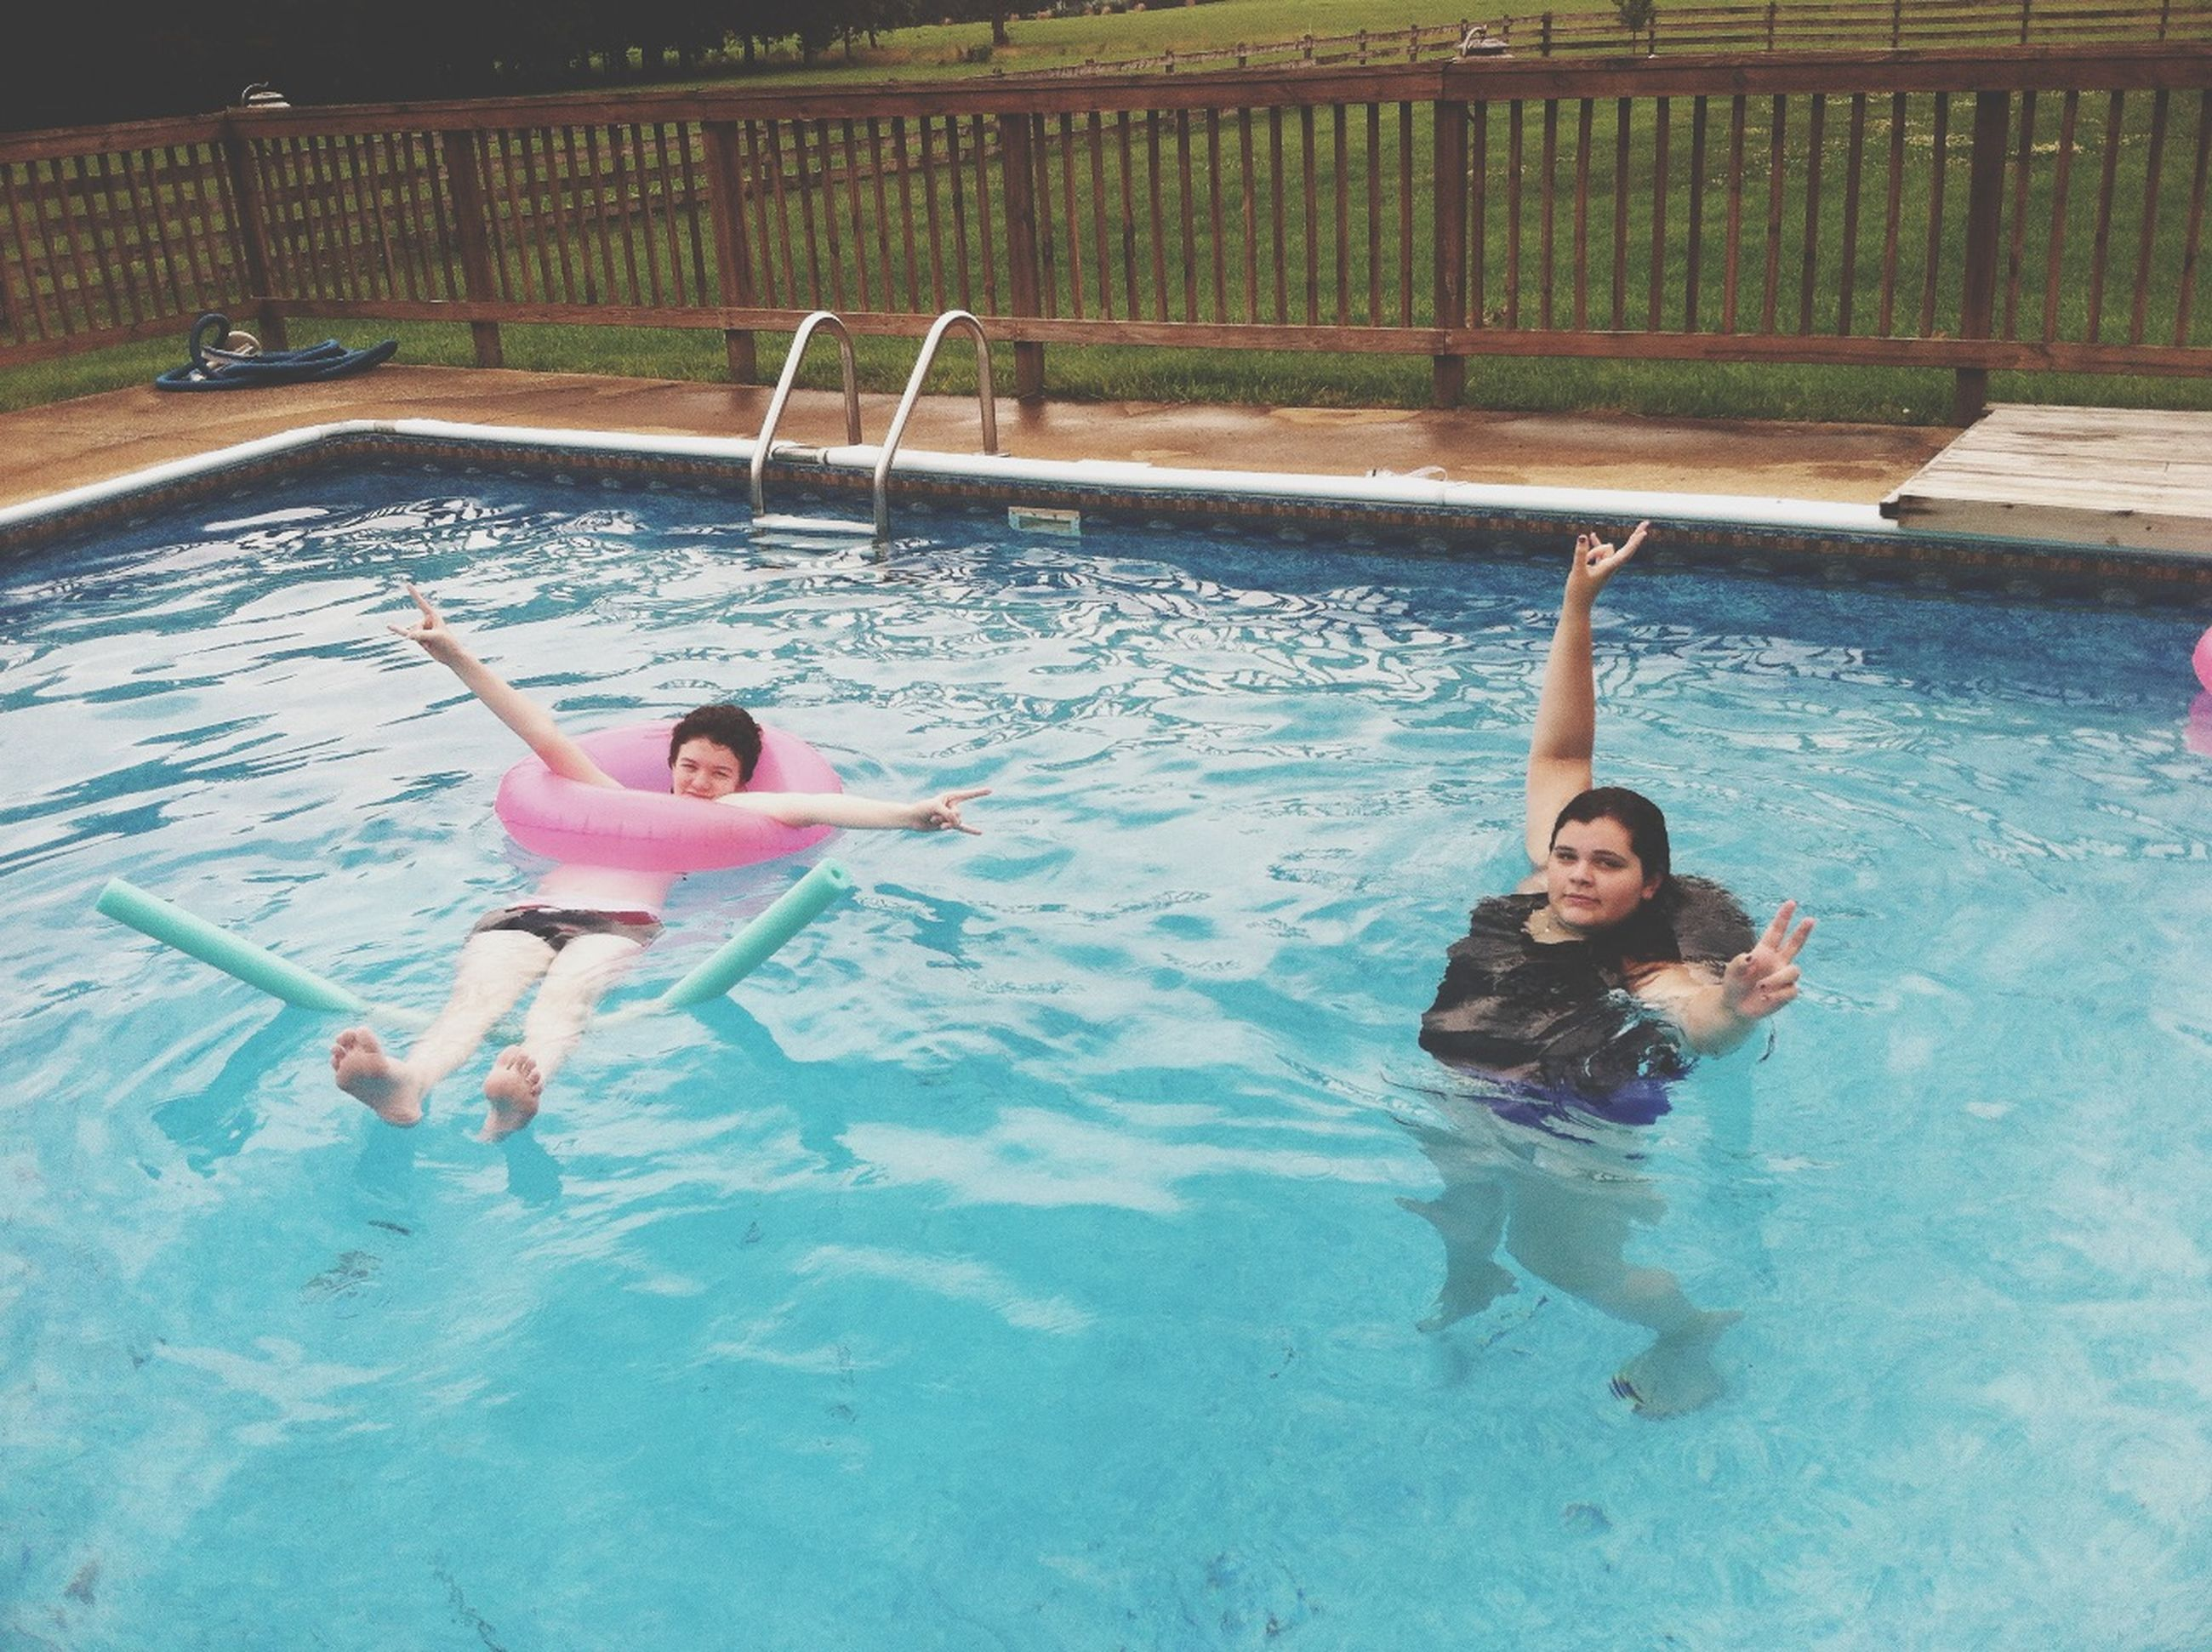 lifestyles, leisure activity, water, full length, person, young adult, enjoyment, swimming pool, shirtless, fun, childhood, vacations, young women, elementary age, high angle view, casual clothing, swimming, boys